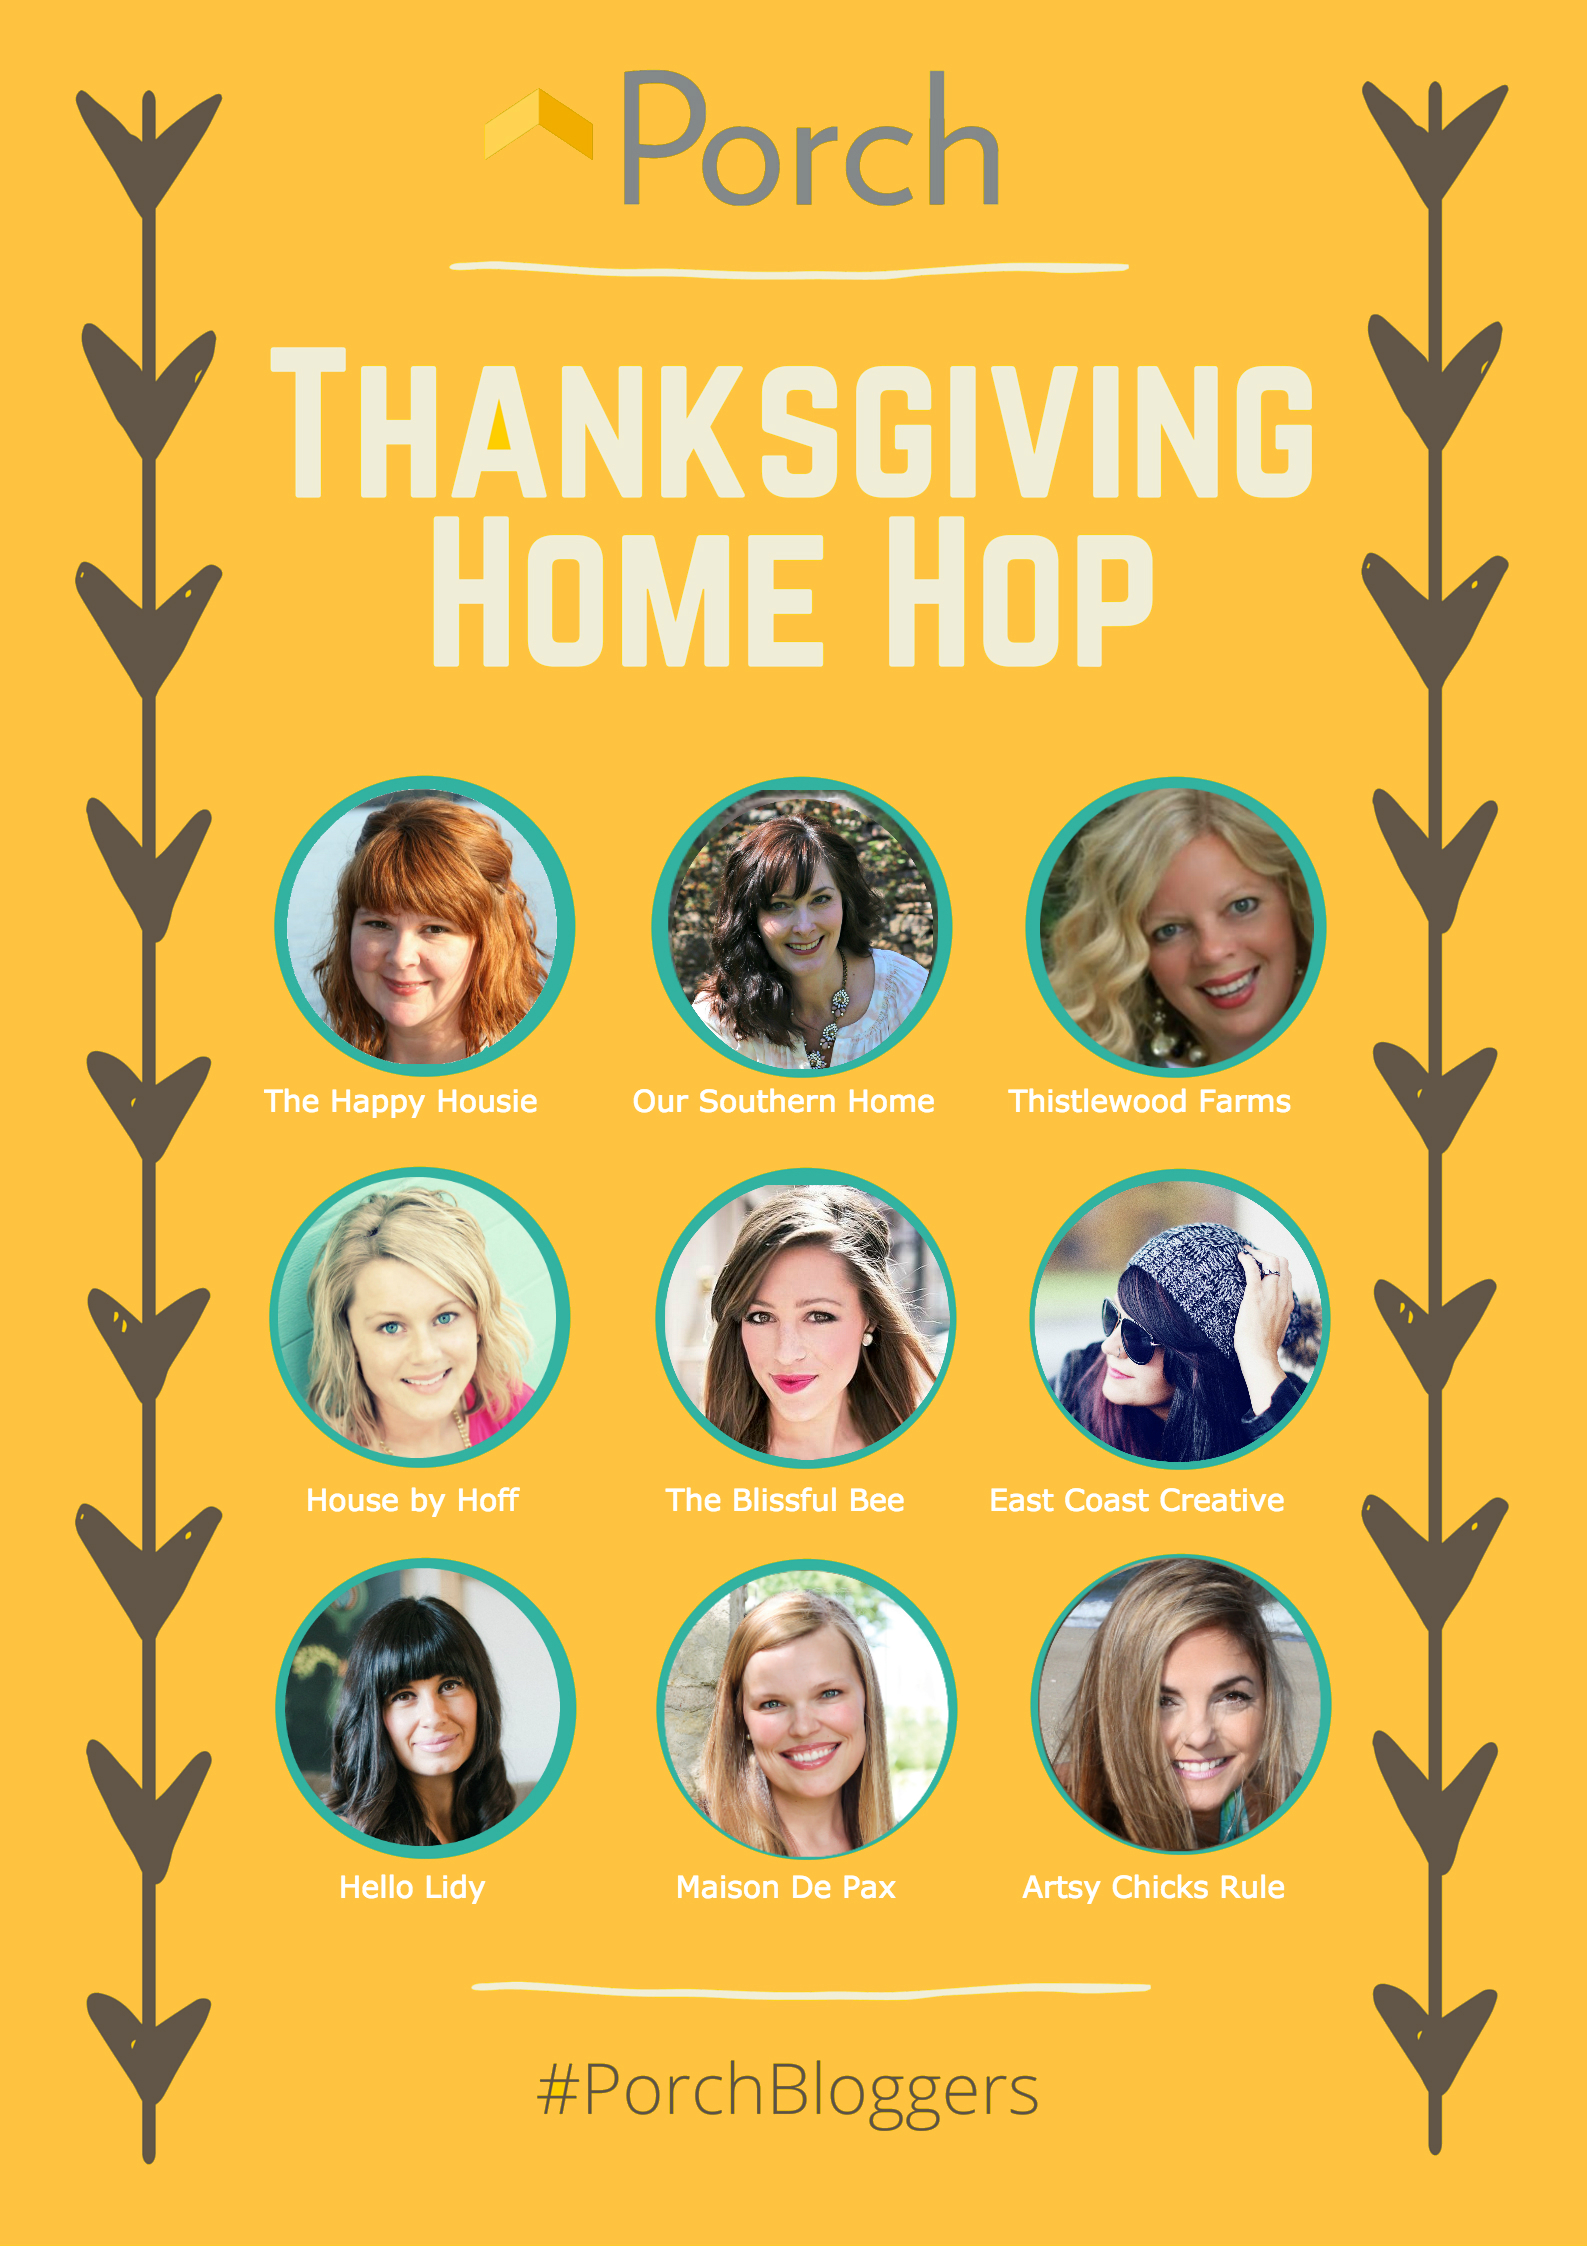 porch thanksgiving home hop bloggers porch gold